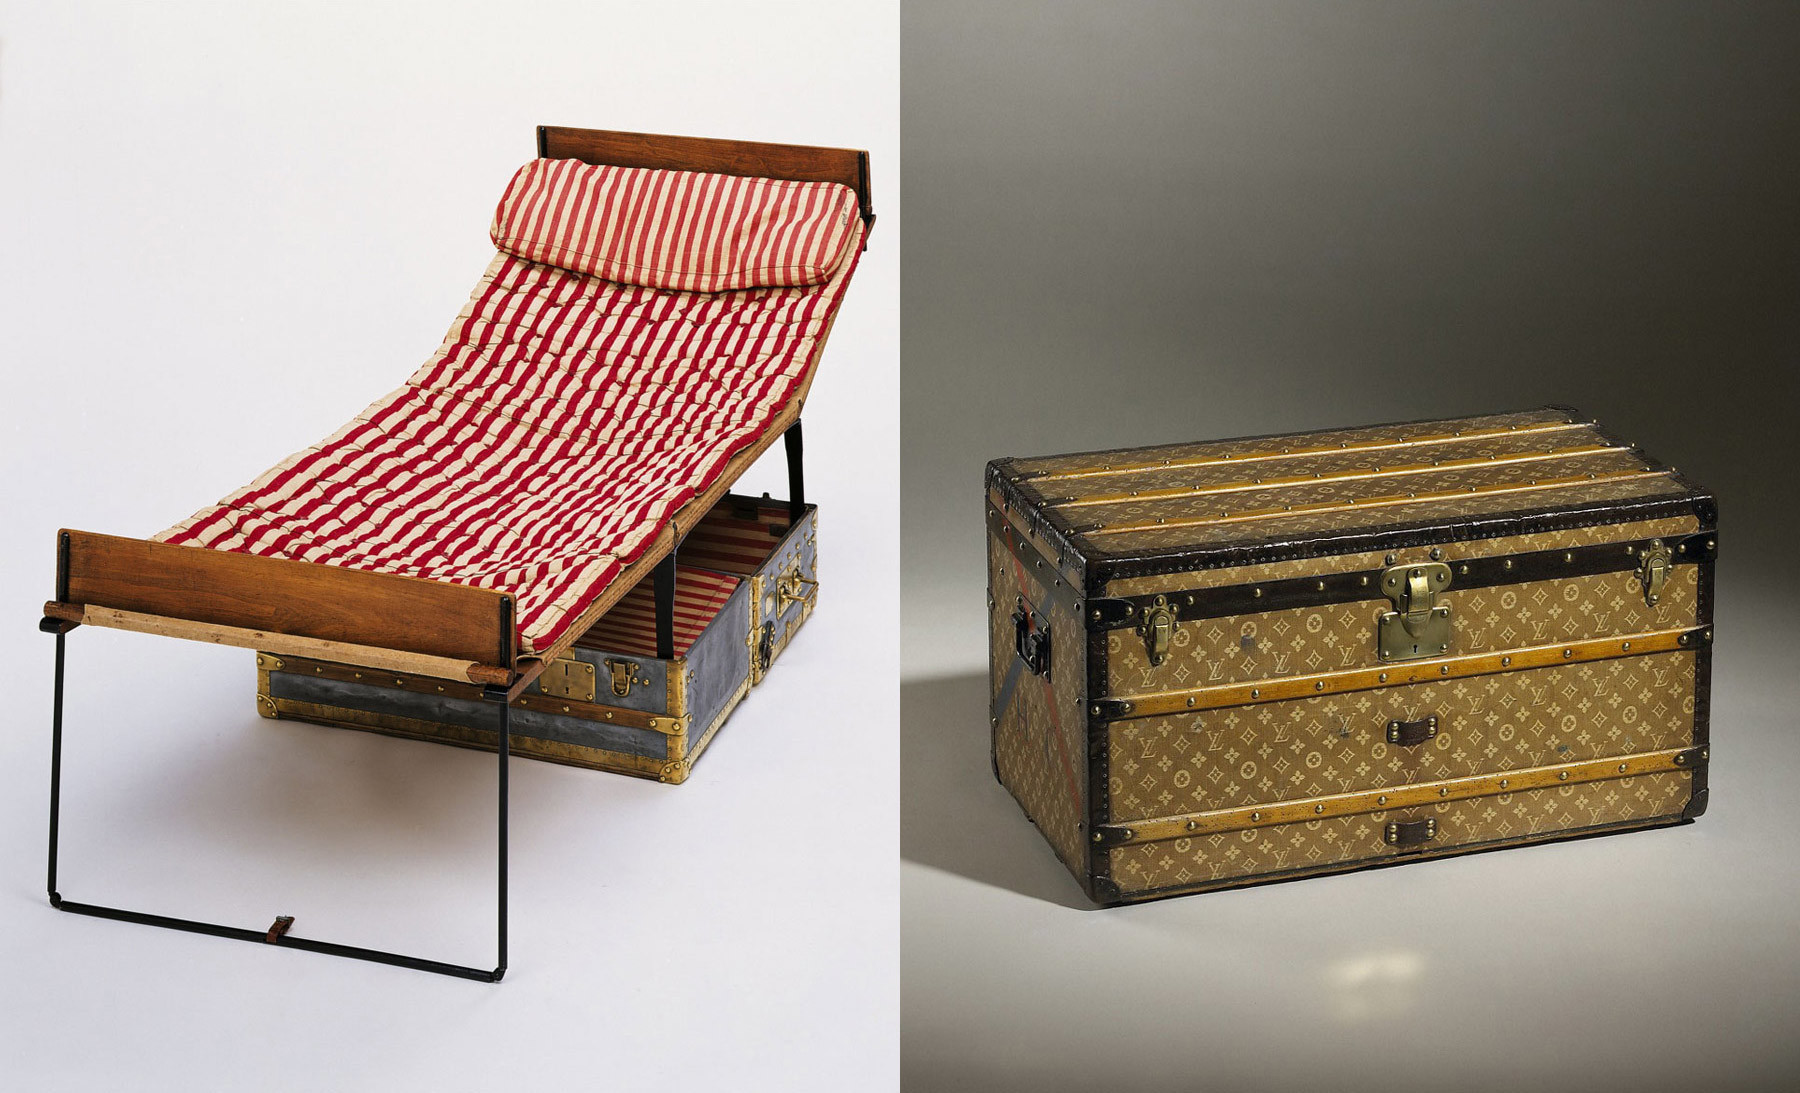 Louis Vuitton's zinc bed trunk, open with a fold-out bed, left. A Vuitton mail trunk with the brand's classic monogram, circa 1906.